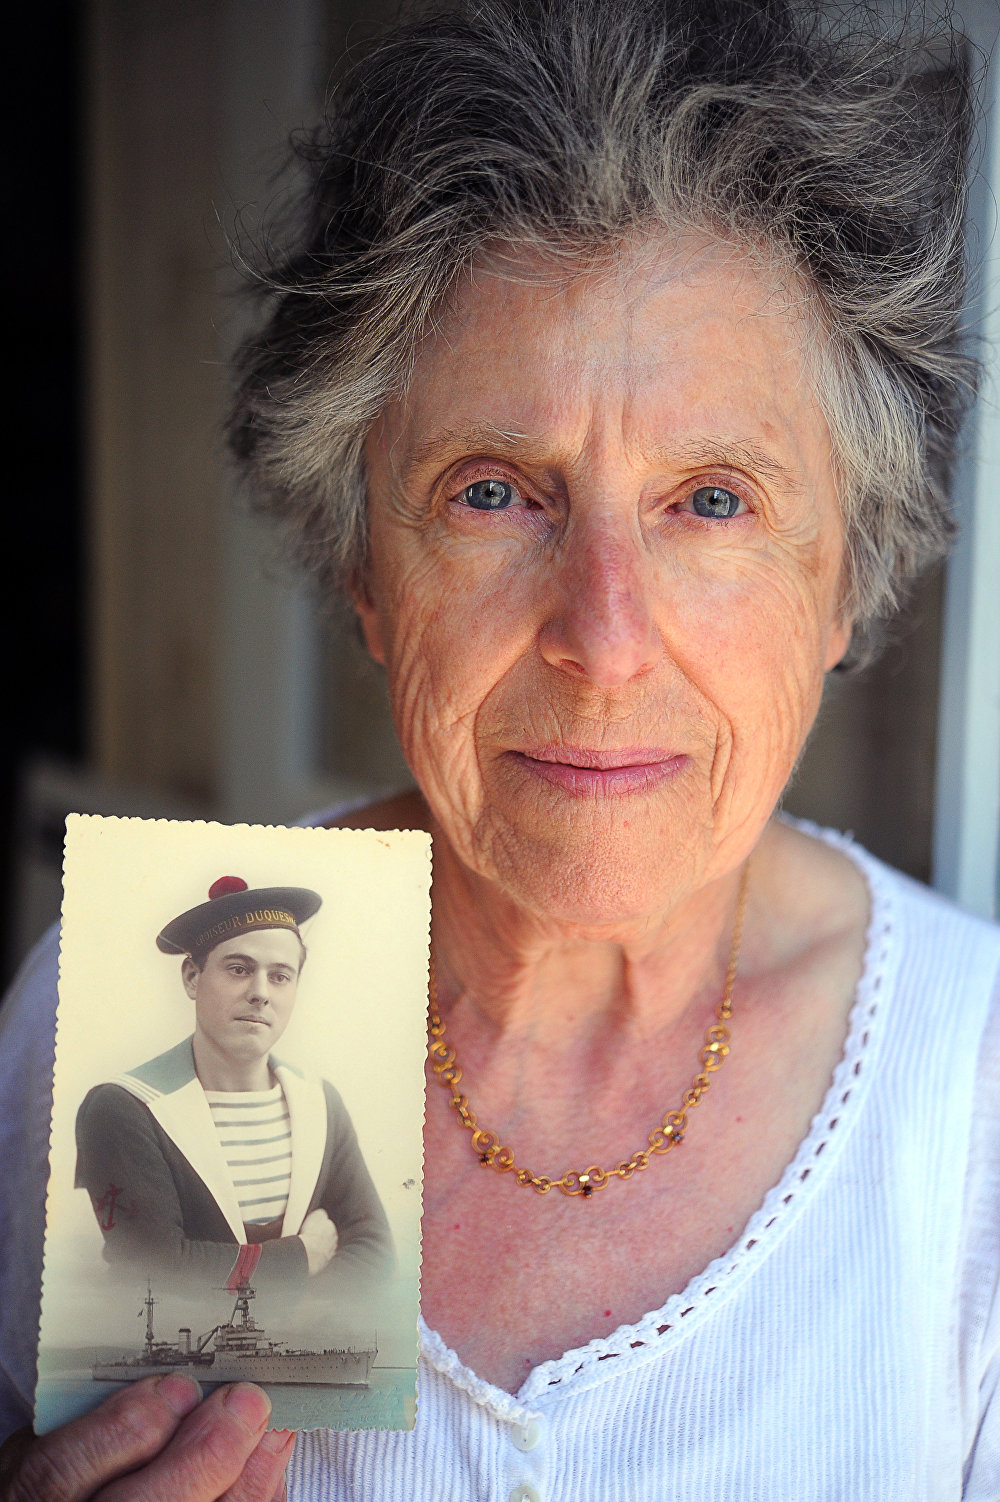 Denise Ollivier, from Paimpol in western France, holds a photograph of her father who died at Mers-el-Kebir